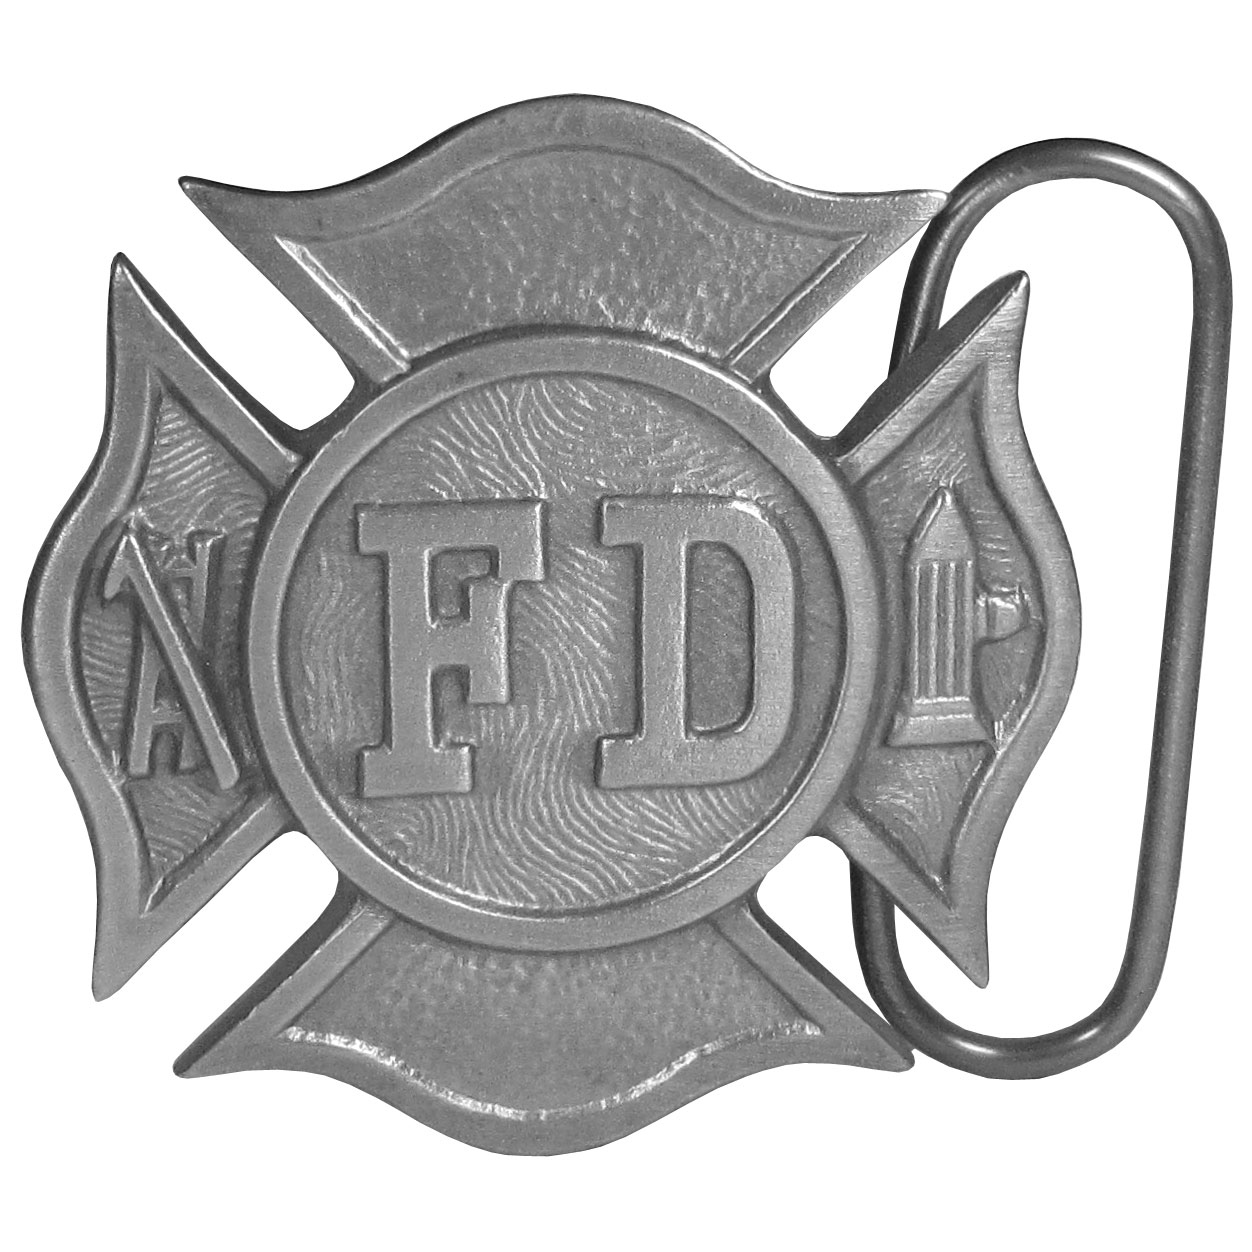 "Fireman's Cross Antiqued Belt Buckle - This belt buckle is dedicated to the Fire Department. It is shaped like a Maltese cross with ""FD"" in bold in the center. There is a fire hydrant and a pickaxe and ladder on each side. This exquisitely carved buckle is made of fully cast metal with a standard bale that fits up to 2"" belts."